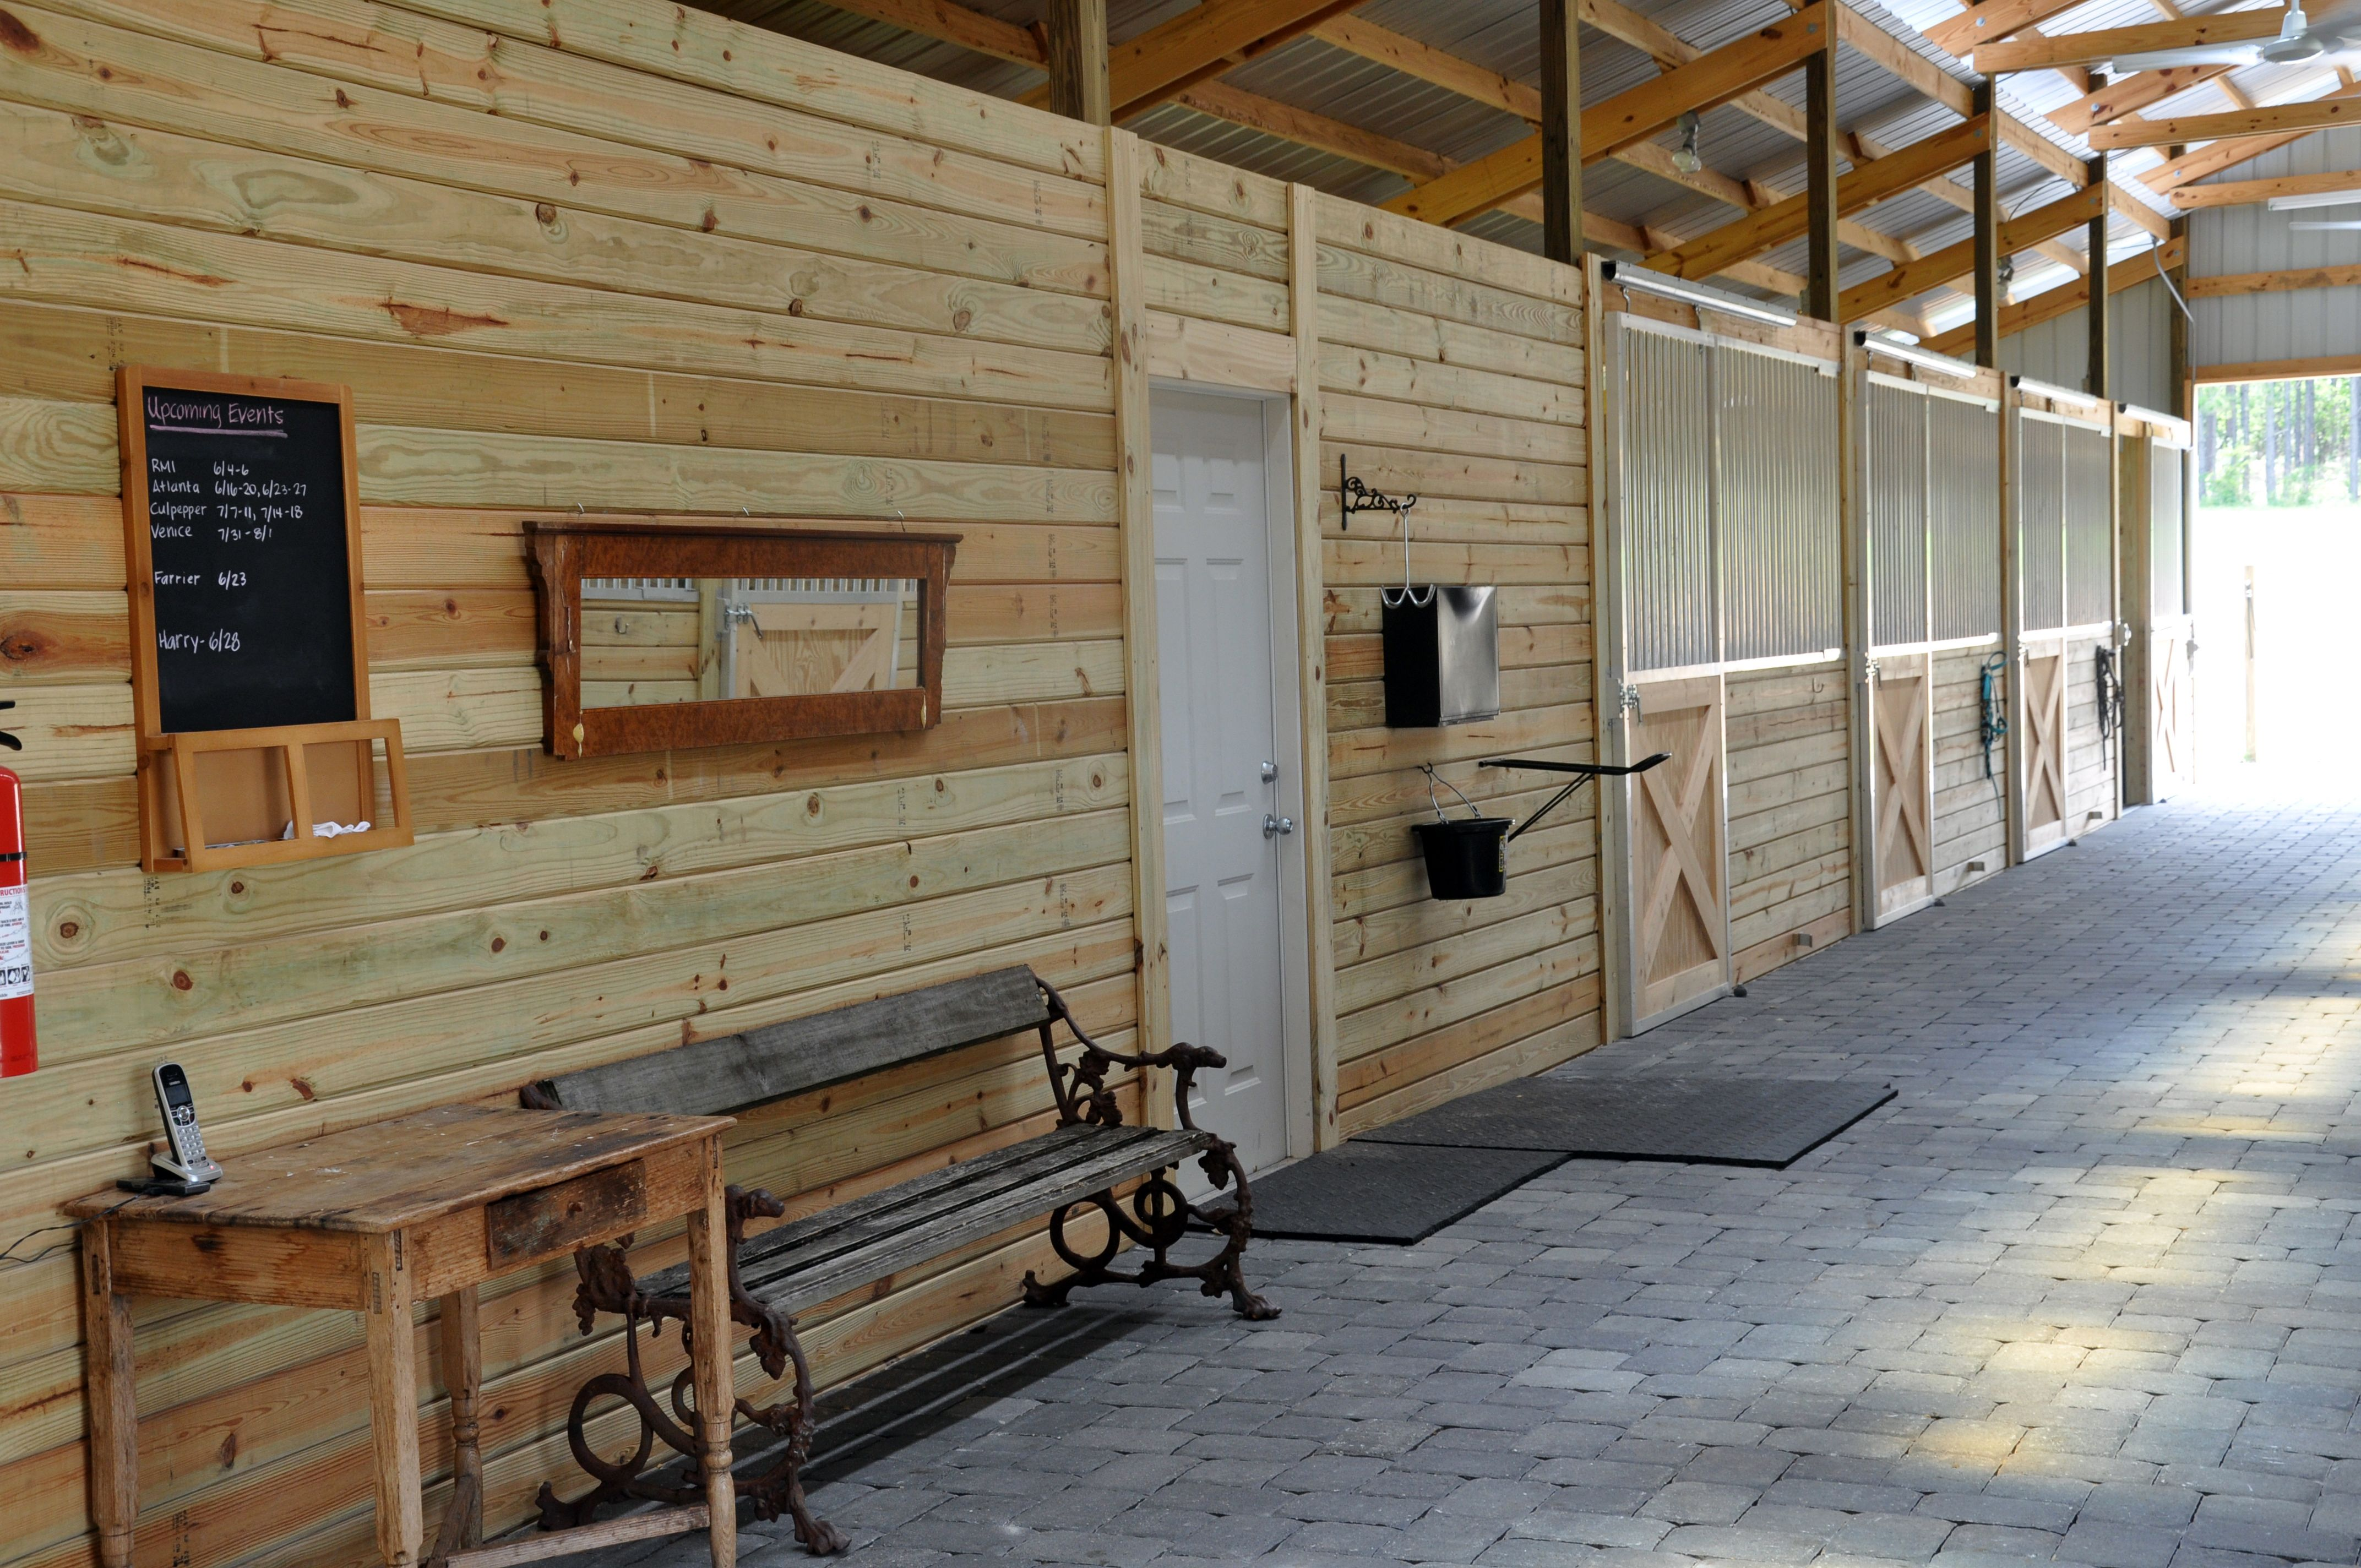 Ordinaire Clean, Wide Walkways And Stalls In The Barn